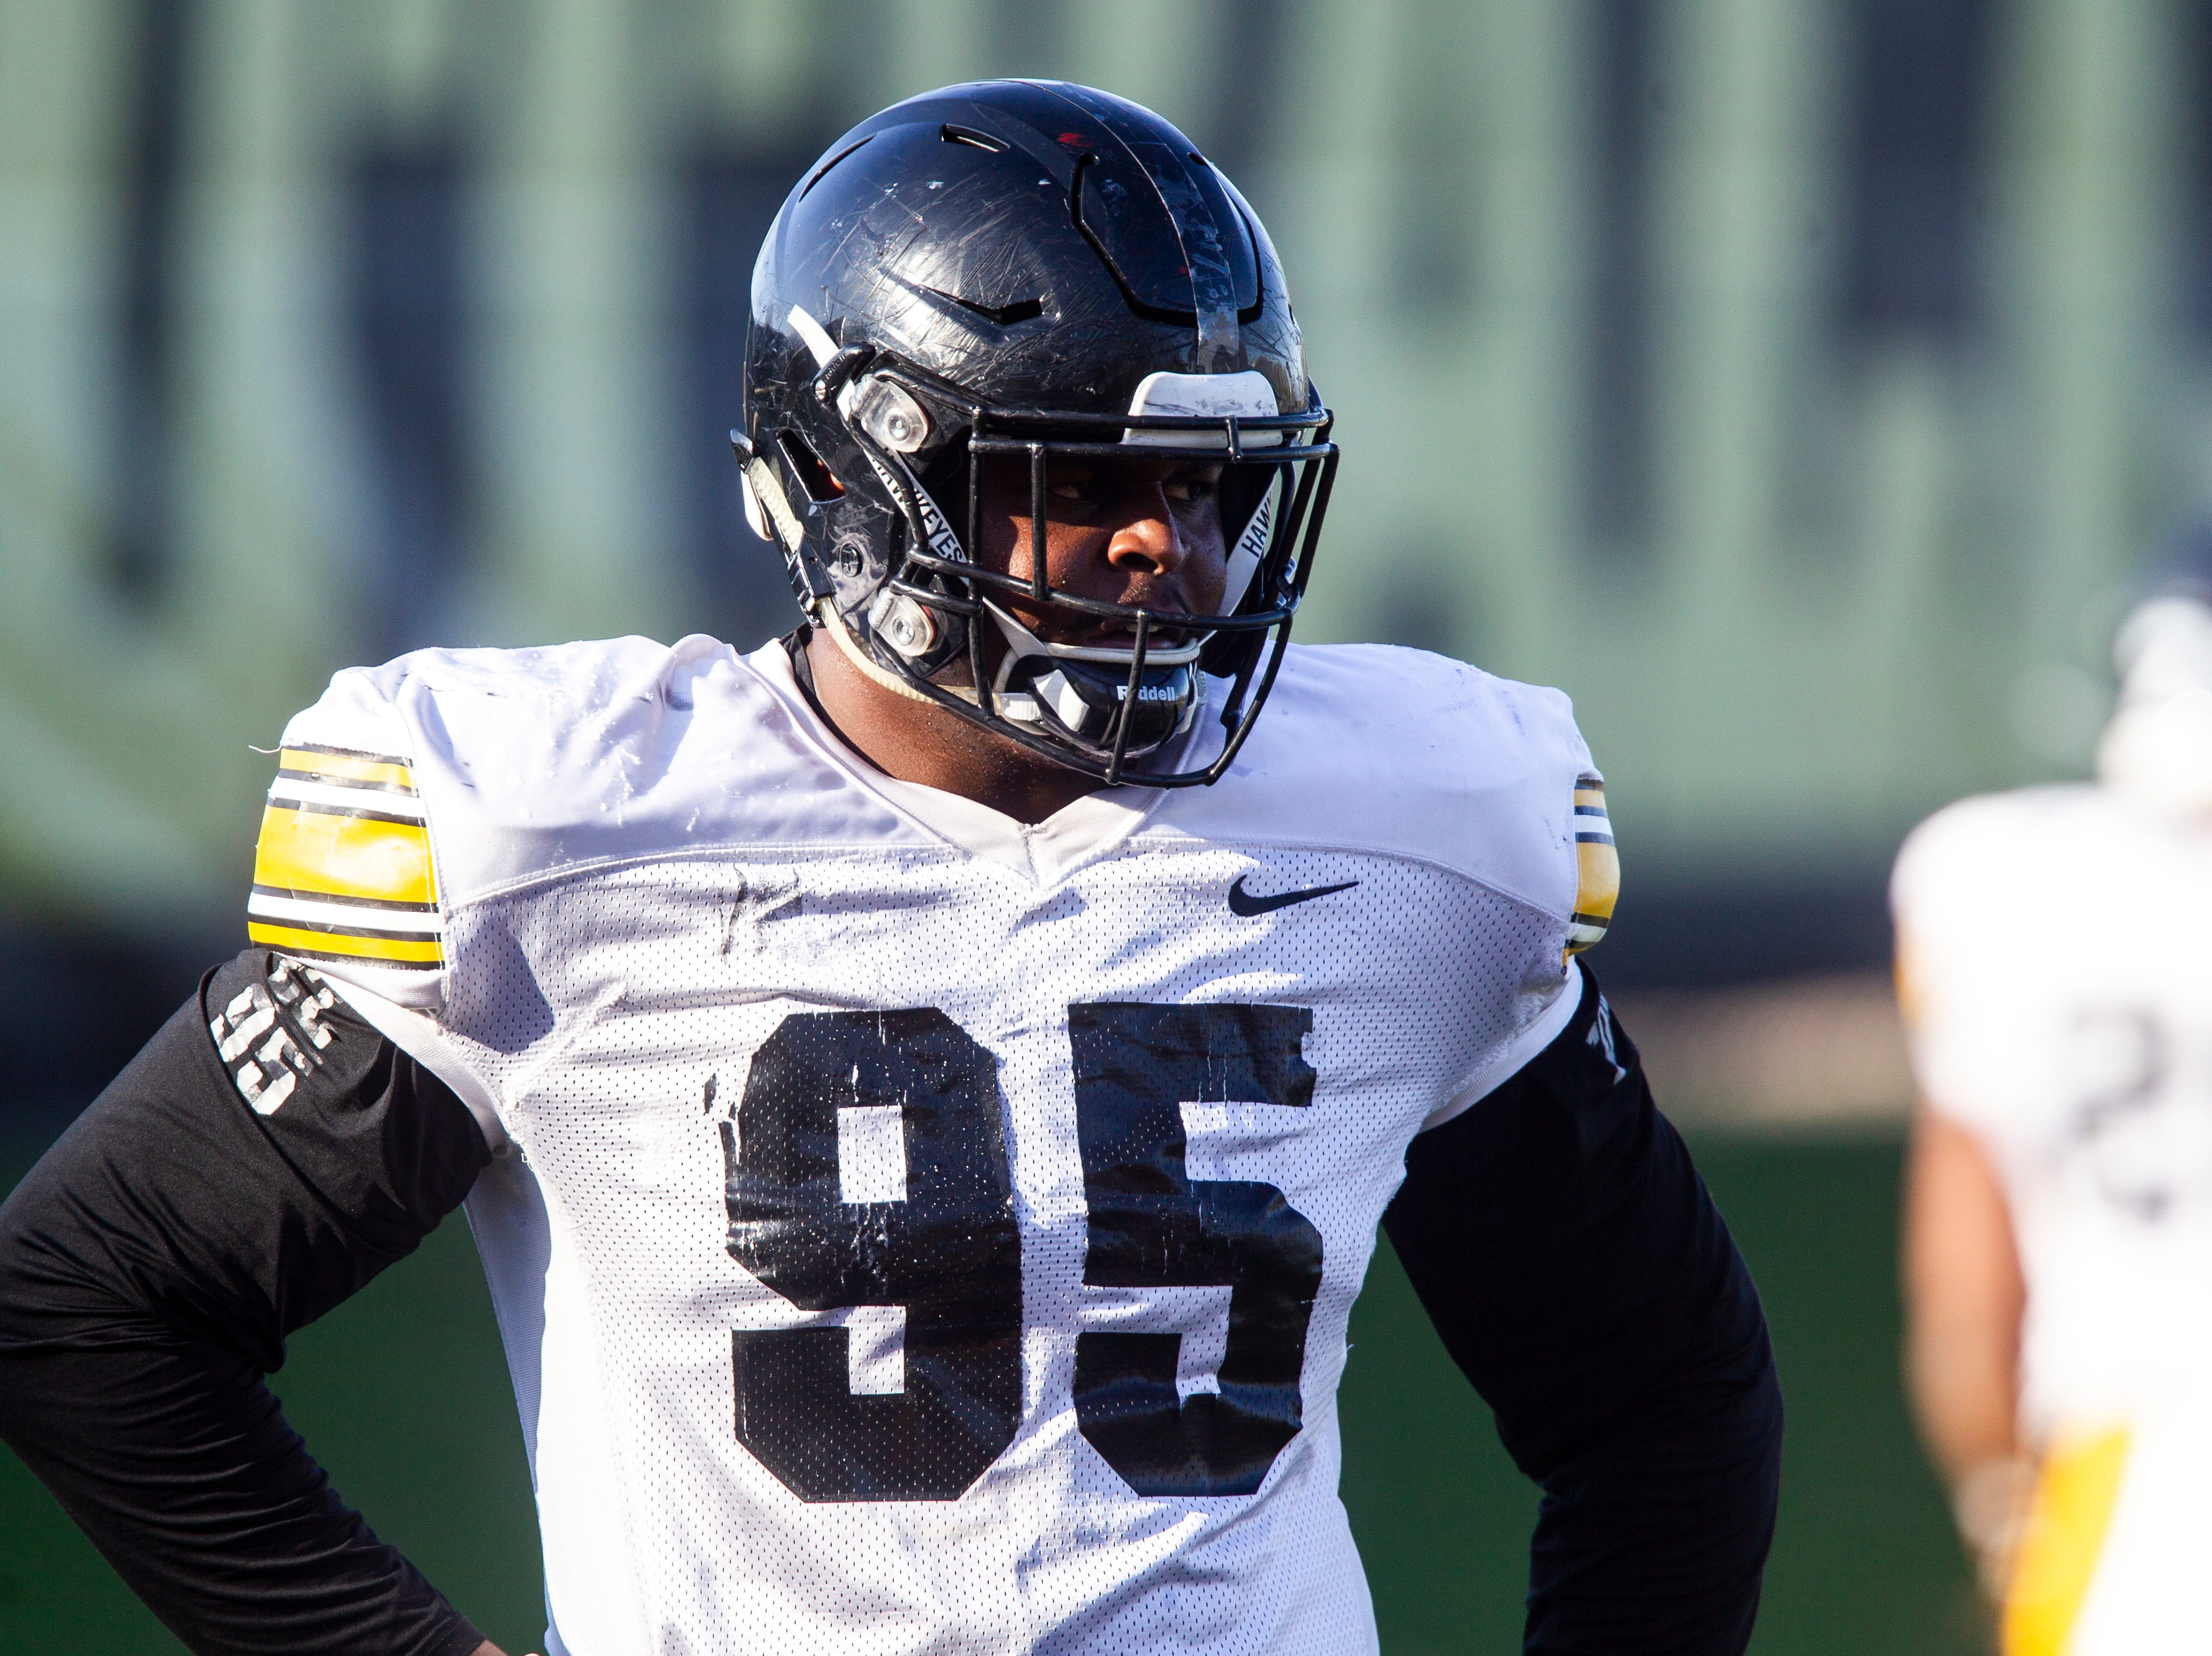 Iowa defensive lineman Cedrick Lattimore (95) is pictured during the final spring football practice, Friday, April 26, 2019, at the University of Iowa outdoor practice facility in Iowa City, Iowa.